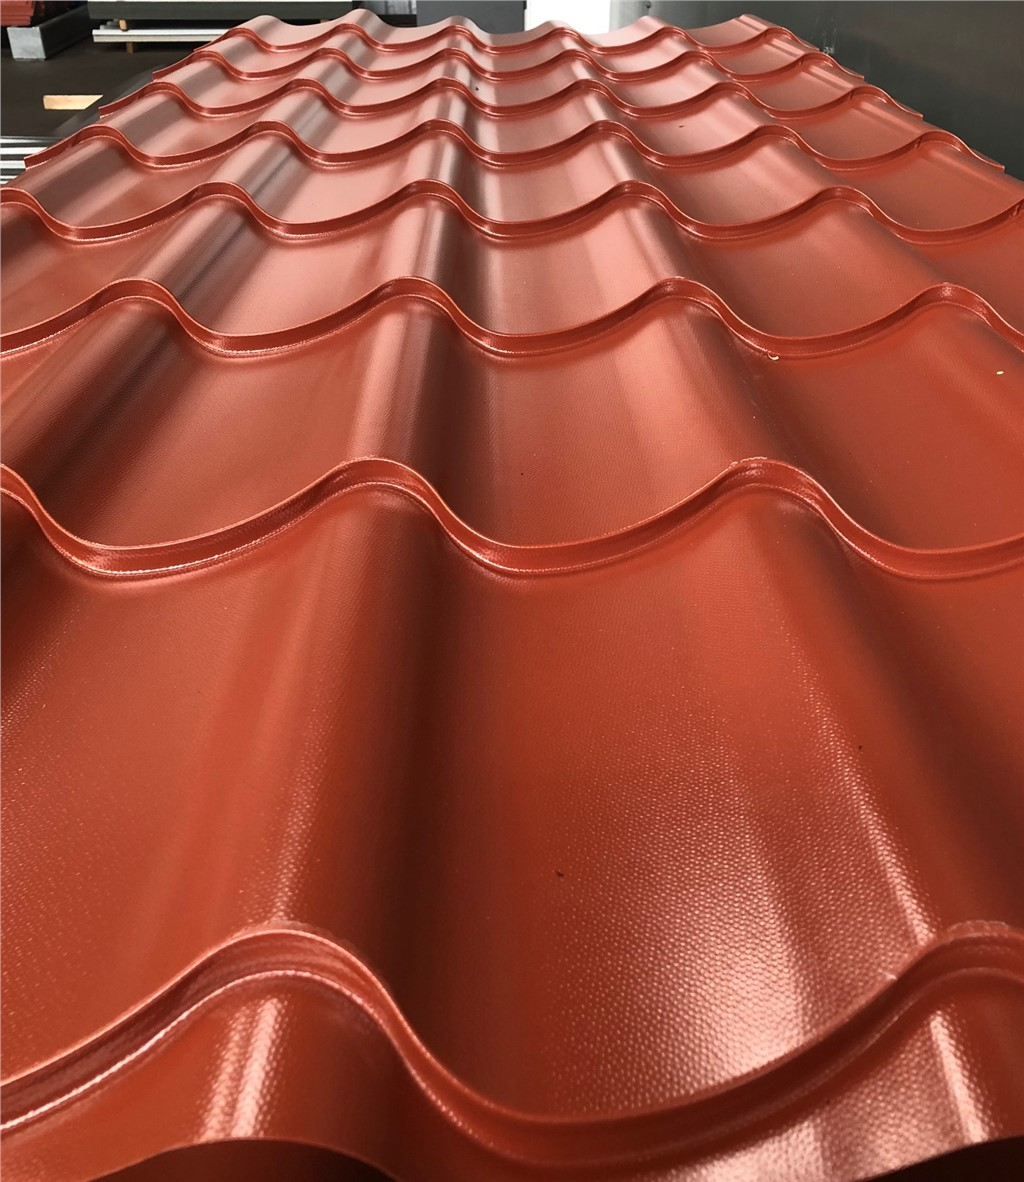 Details about ROOF SHEETS GALVANISED STEEL CLADDING WAVE TILE **PLASTIC  COATED STEEL**